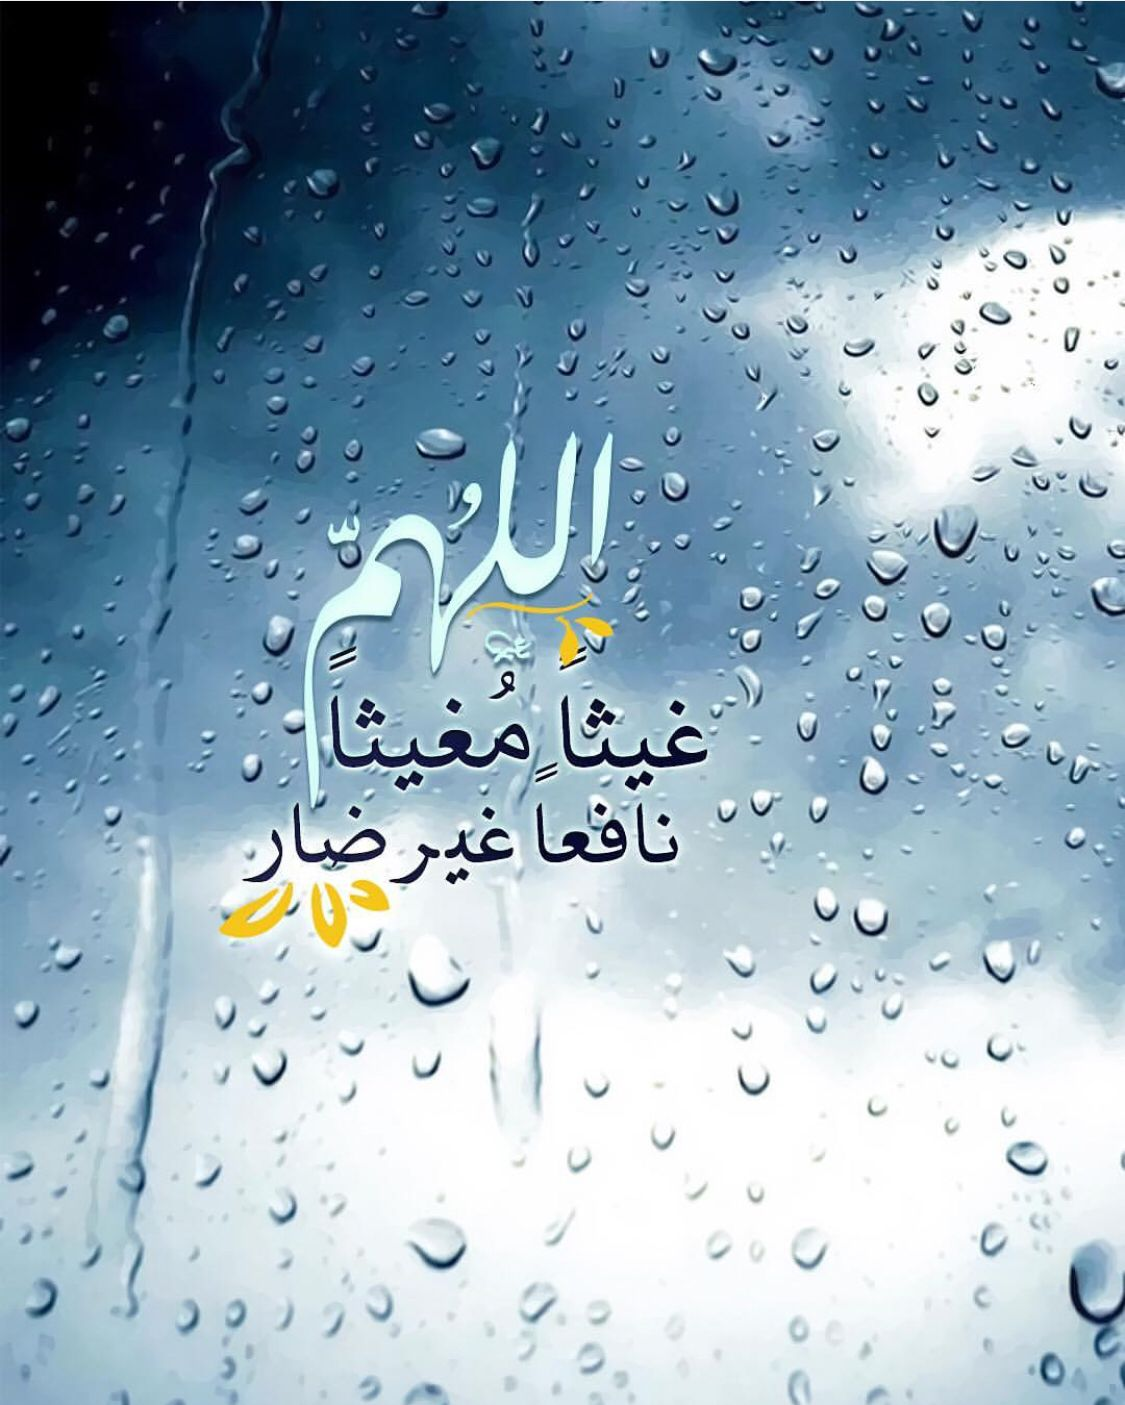 Pin By Raed Hjooj On Duea دعاء Islamic Pictures Islamic Images Rain And Thunder